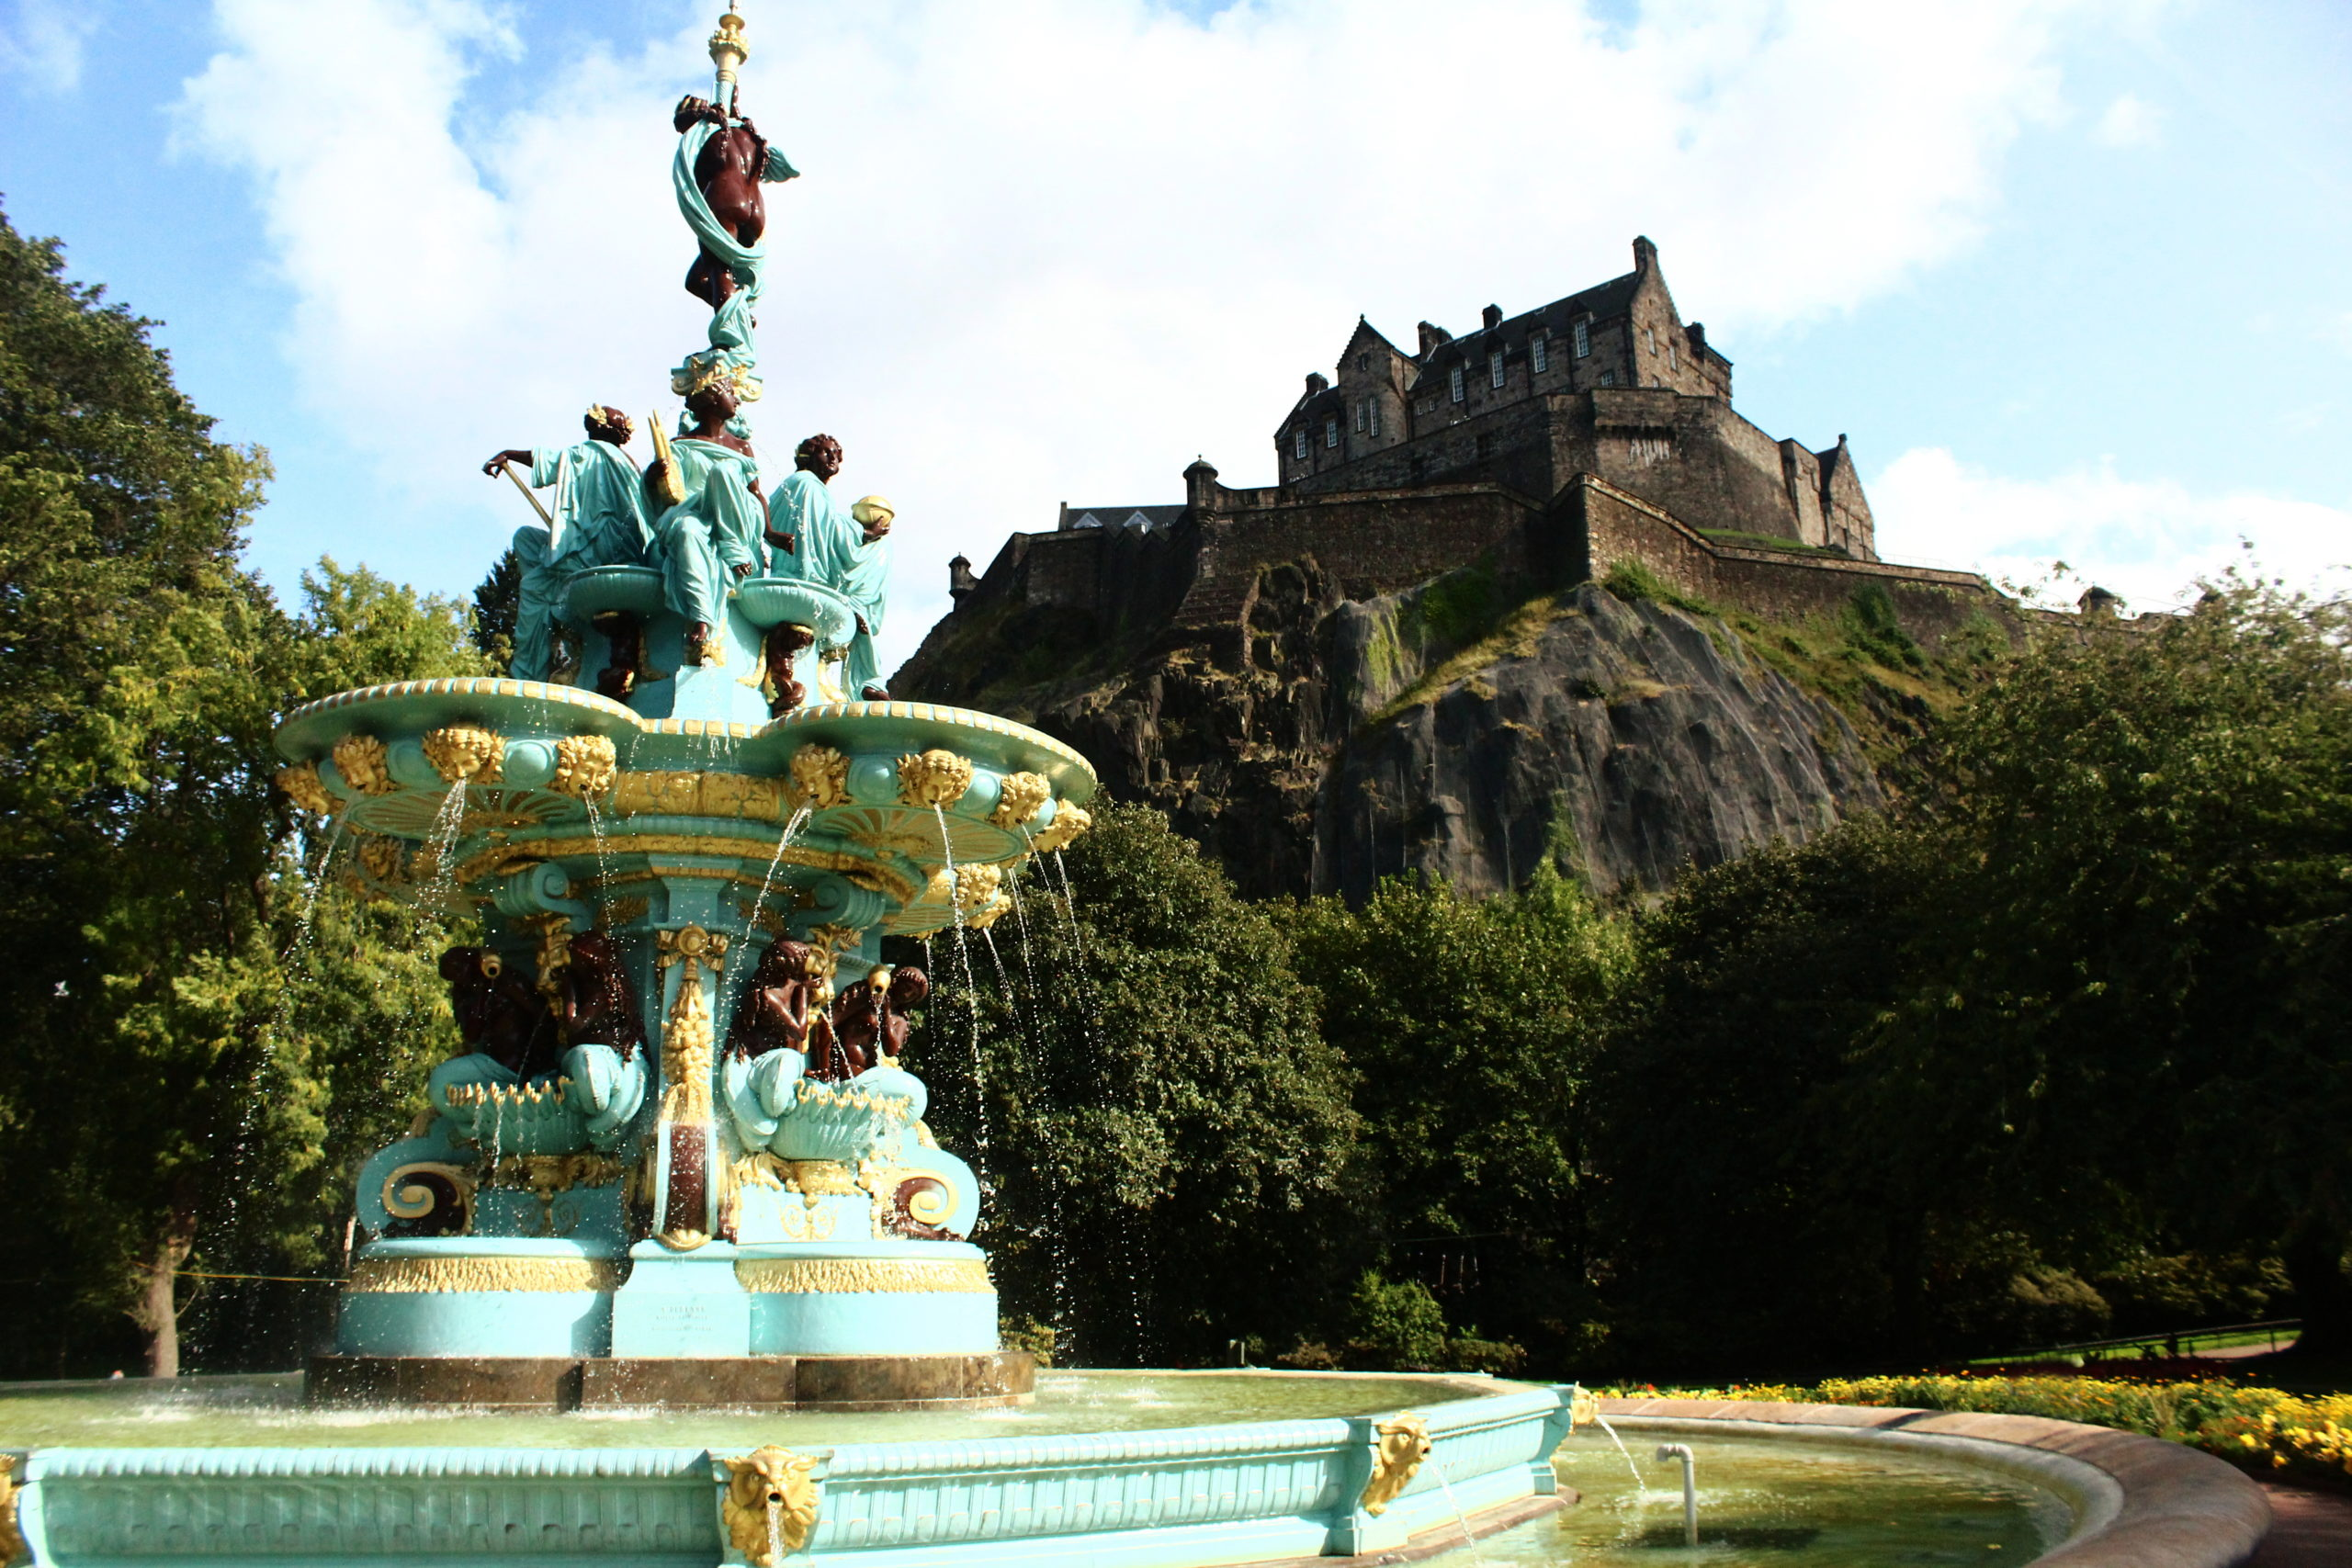 Reasons to visit Edinburgh